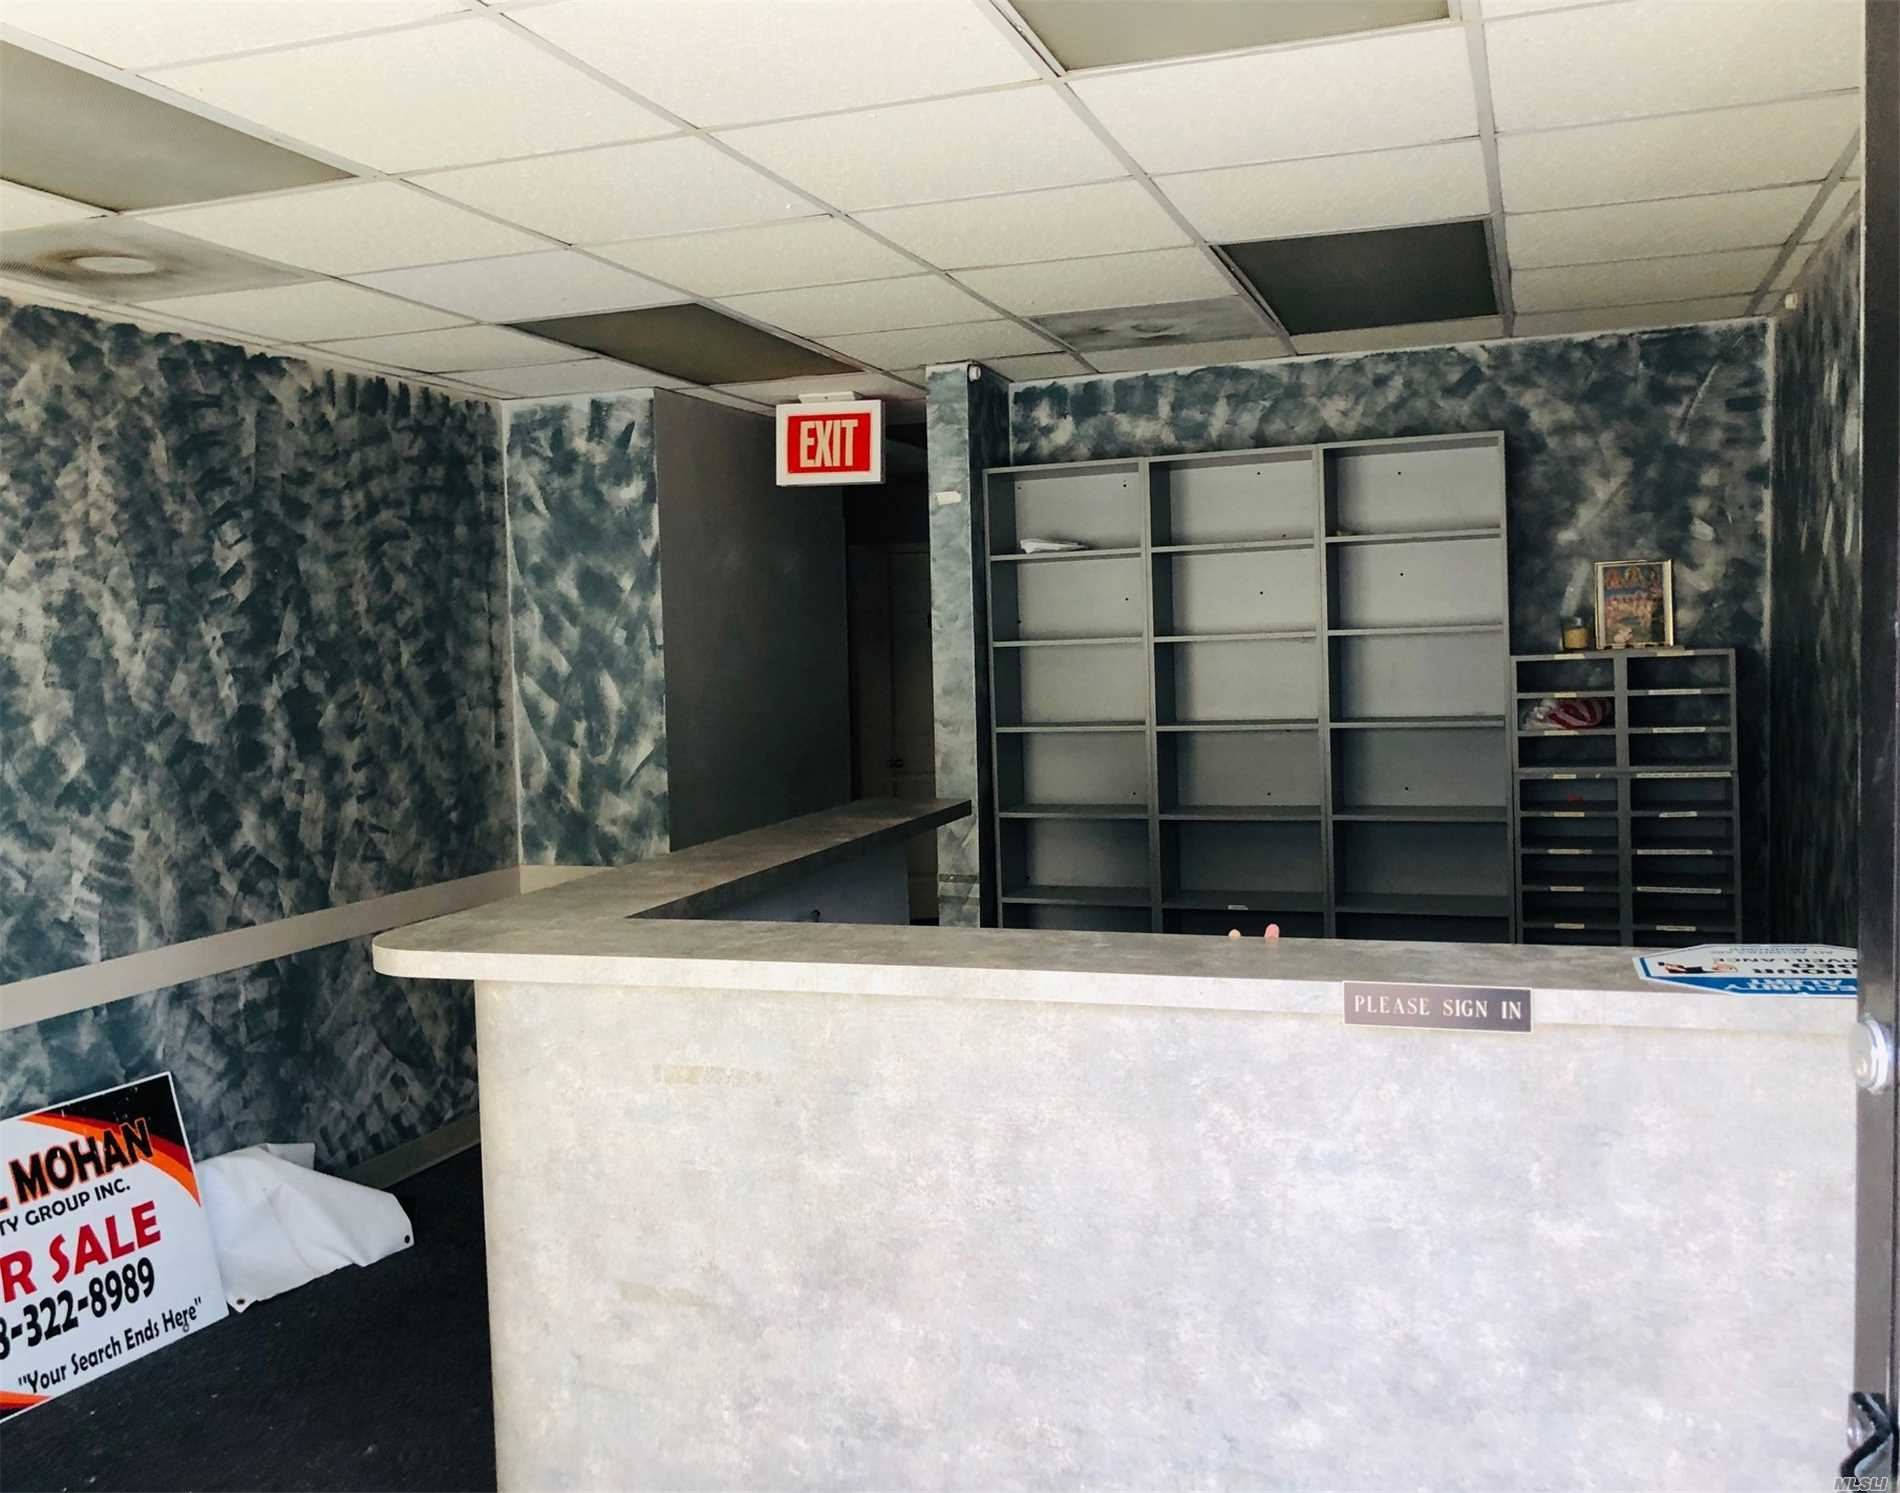 1st Floor Mix - Use For Rent. All Types Of Business Will Be Considered. This Space Is Currently Set Up As A Dr Office. There Is A Full Open Basement Attach To This Floor And Is Included.